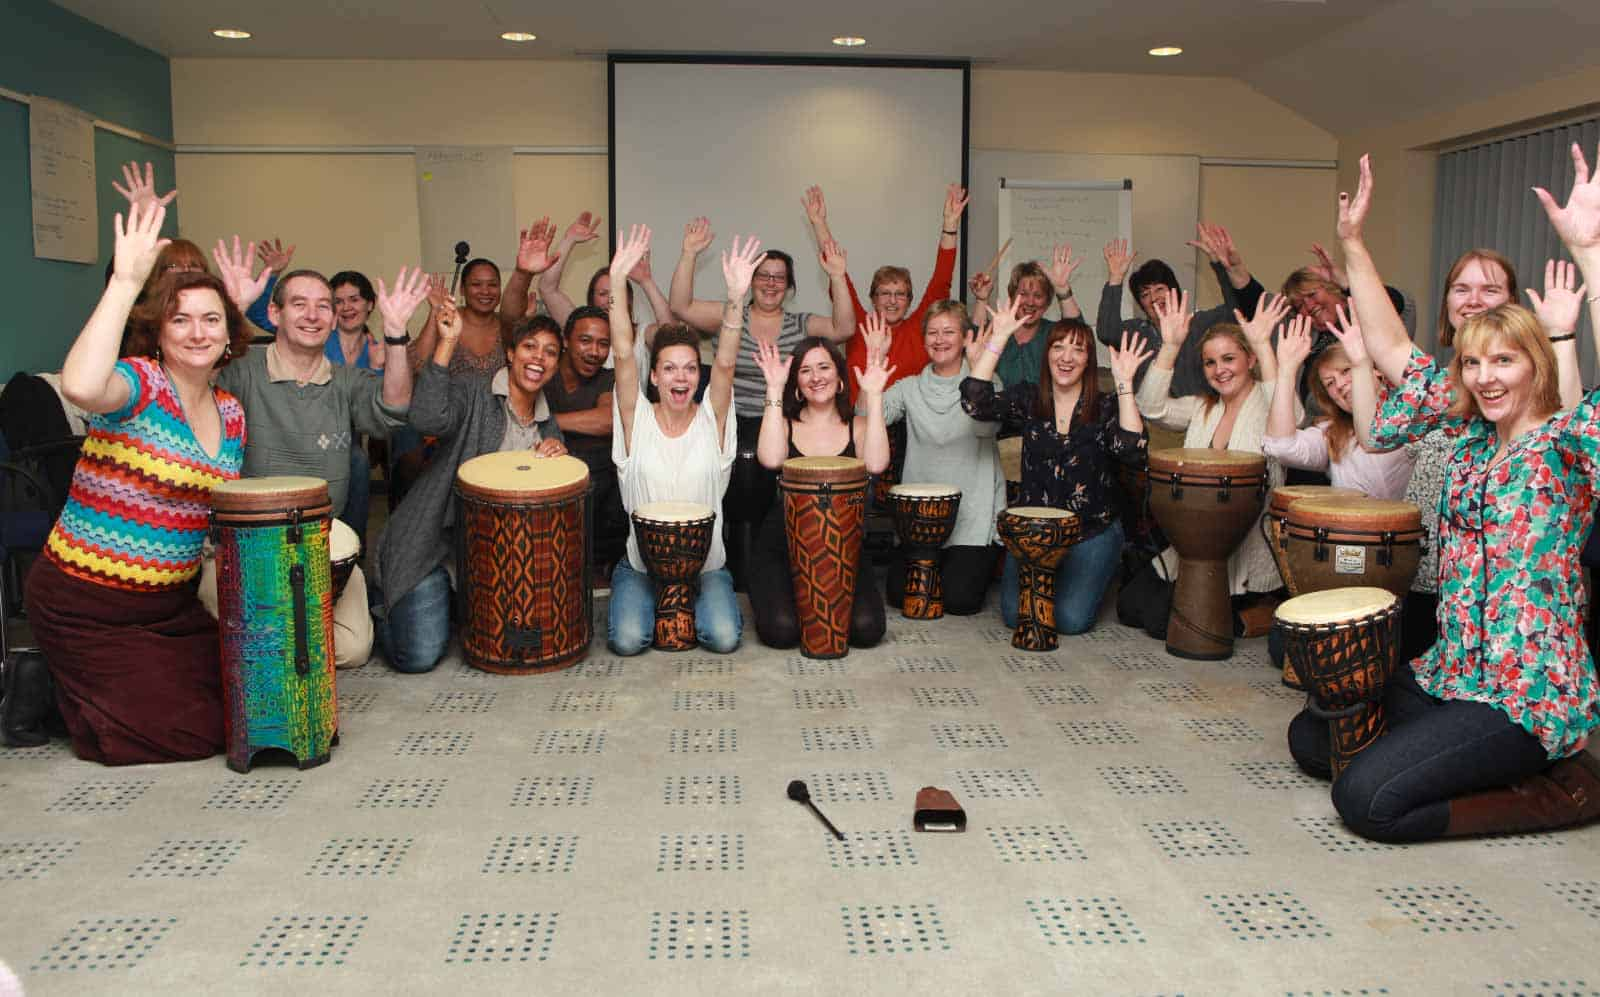 Team building drumming session